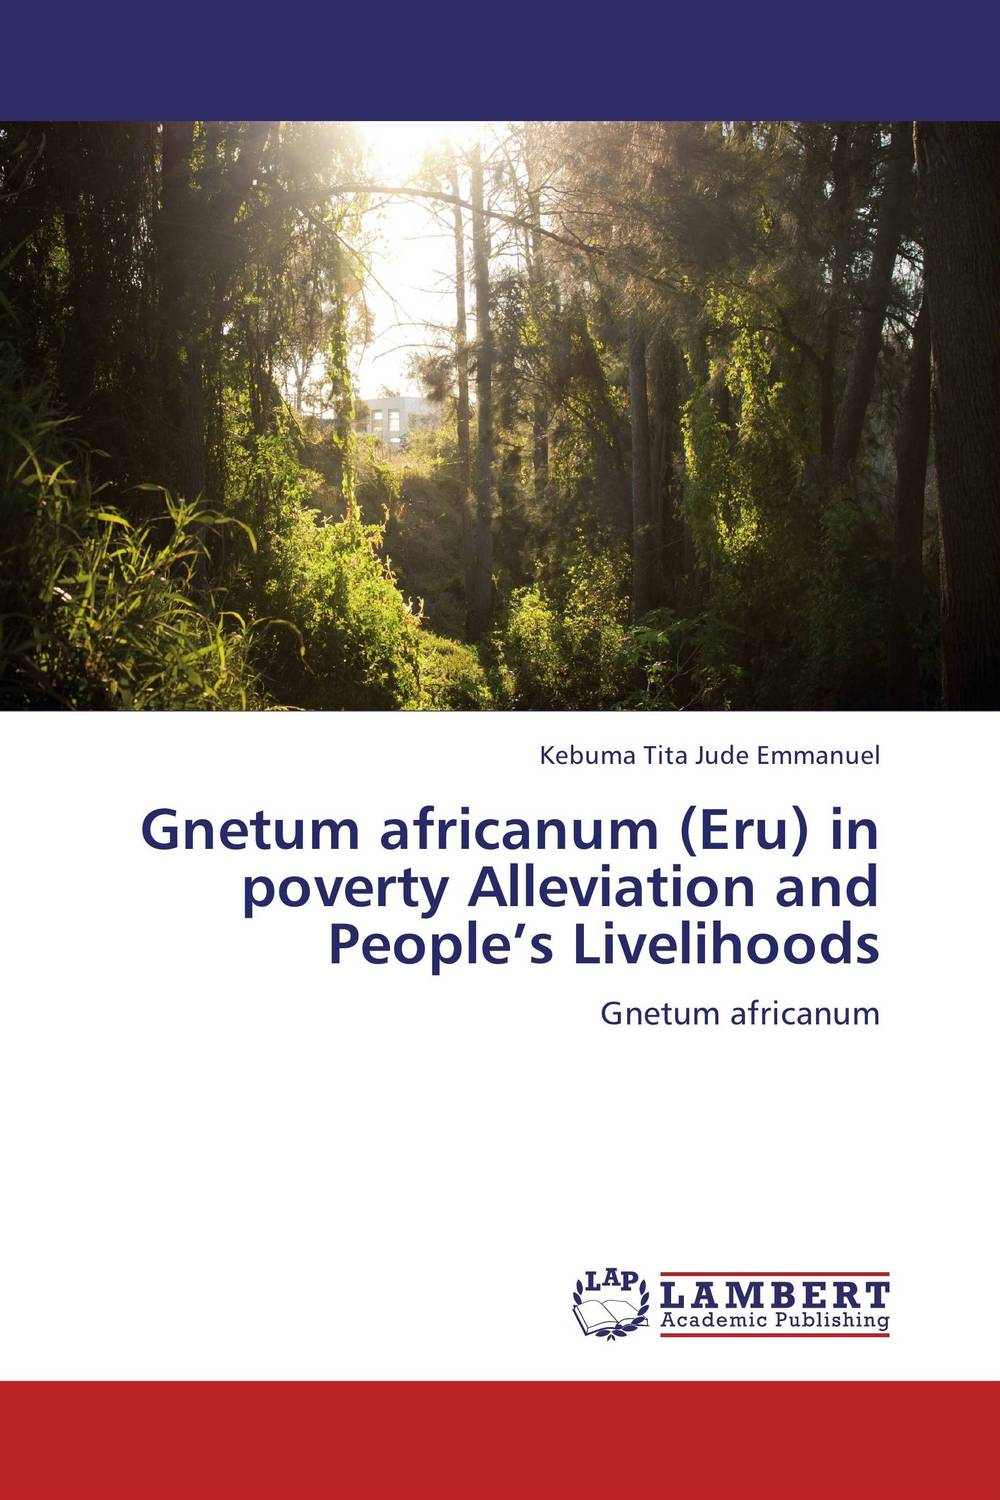 Gnetum africanum (Eru) in poverty Alleviation and People's Livelihoods role of ict in rural poverty alleviation